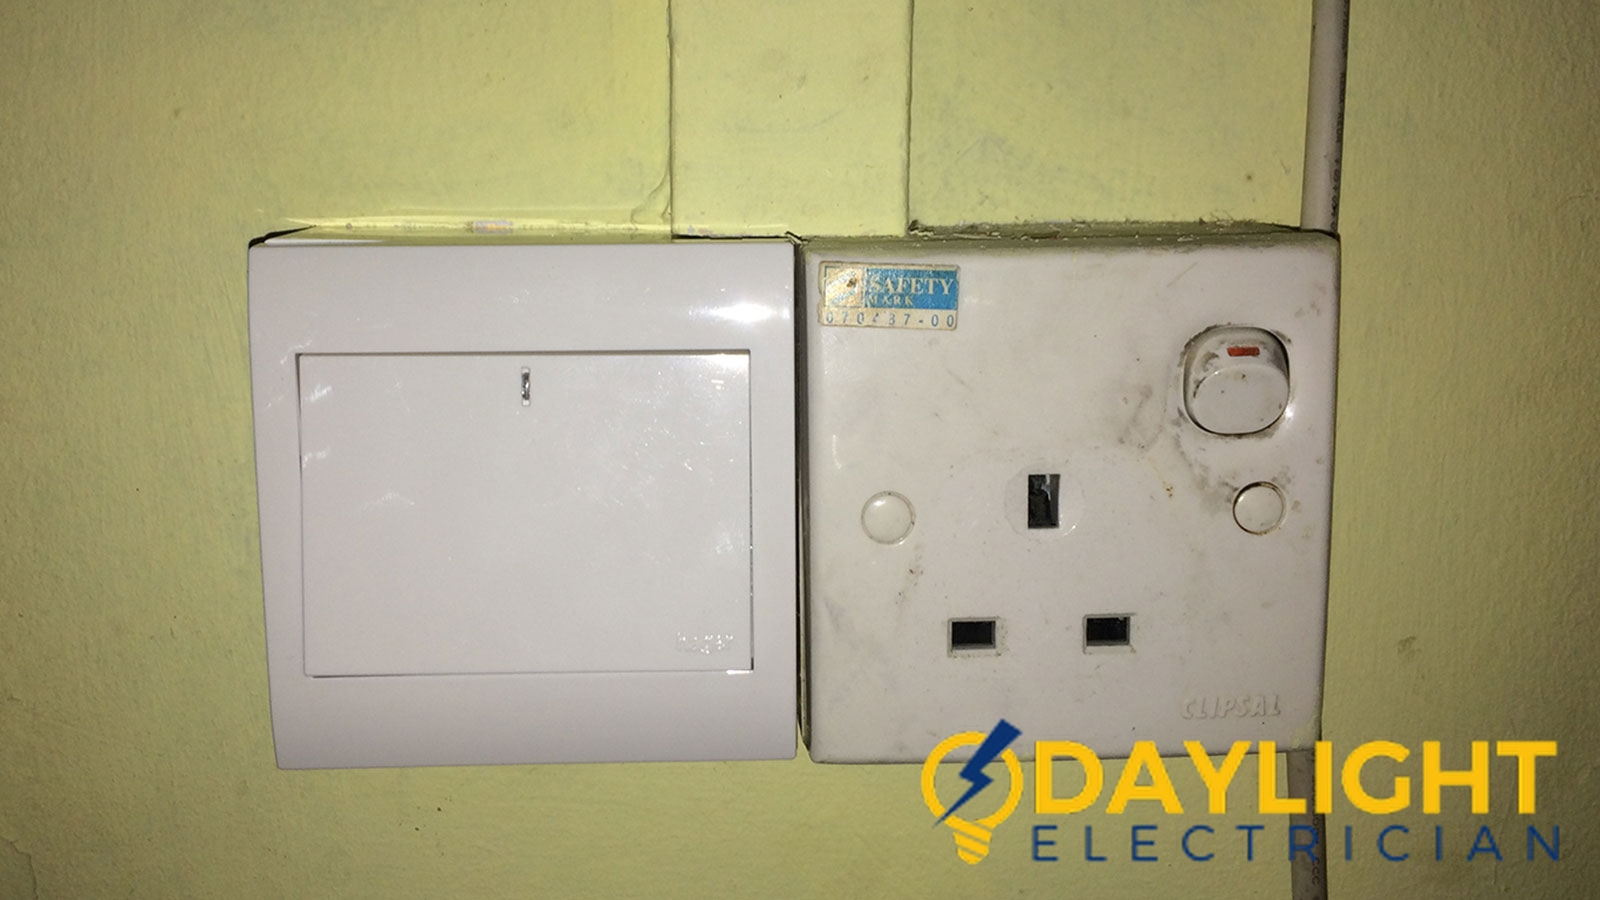 Water heater switch replacement daylight electrician singapore hdb pasir ris 2